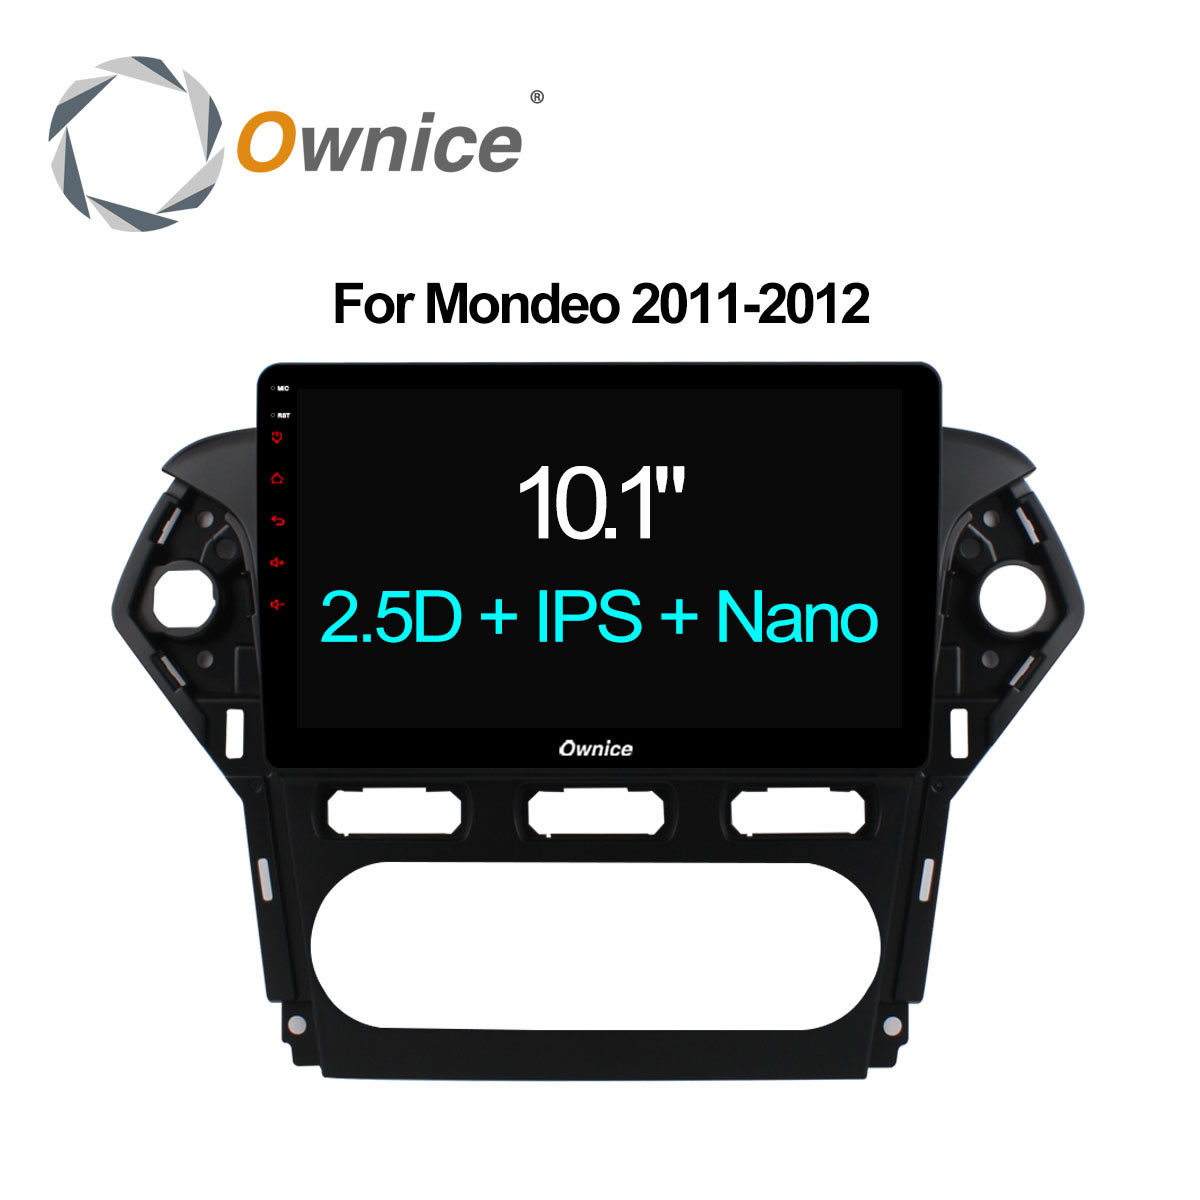 Ownice 10.1 Octa Core Android 6.0 2GB RAM Car DVD GPS Navi Radio For Ford Mondeo 2011-2012 Headunit Stereo Support 2.5D IPS 4G